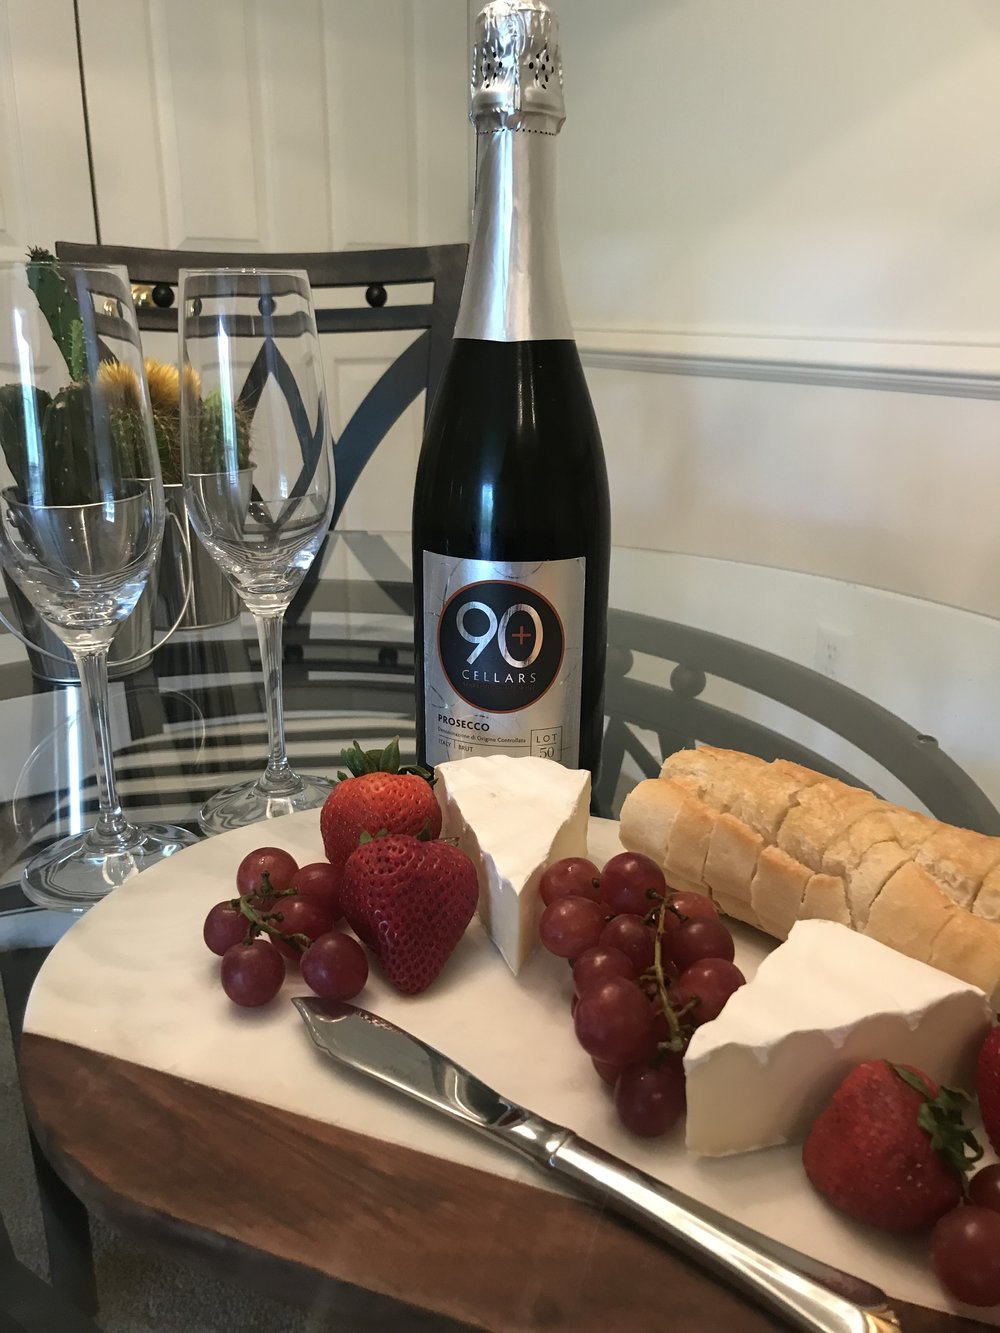 Lot 50 90+ Cellars Prosecco -